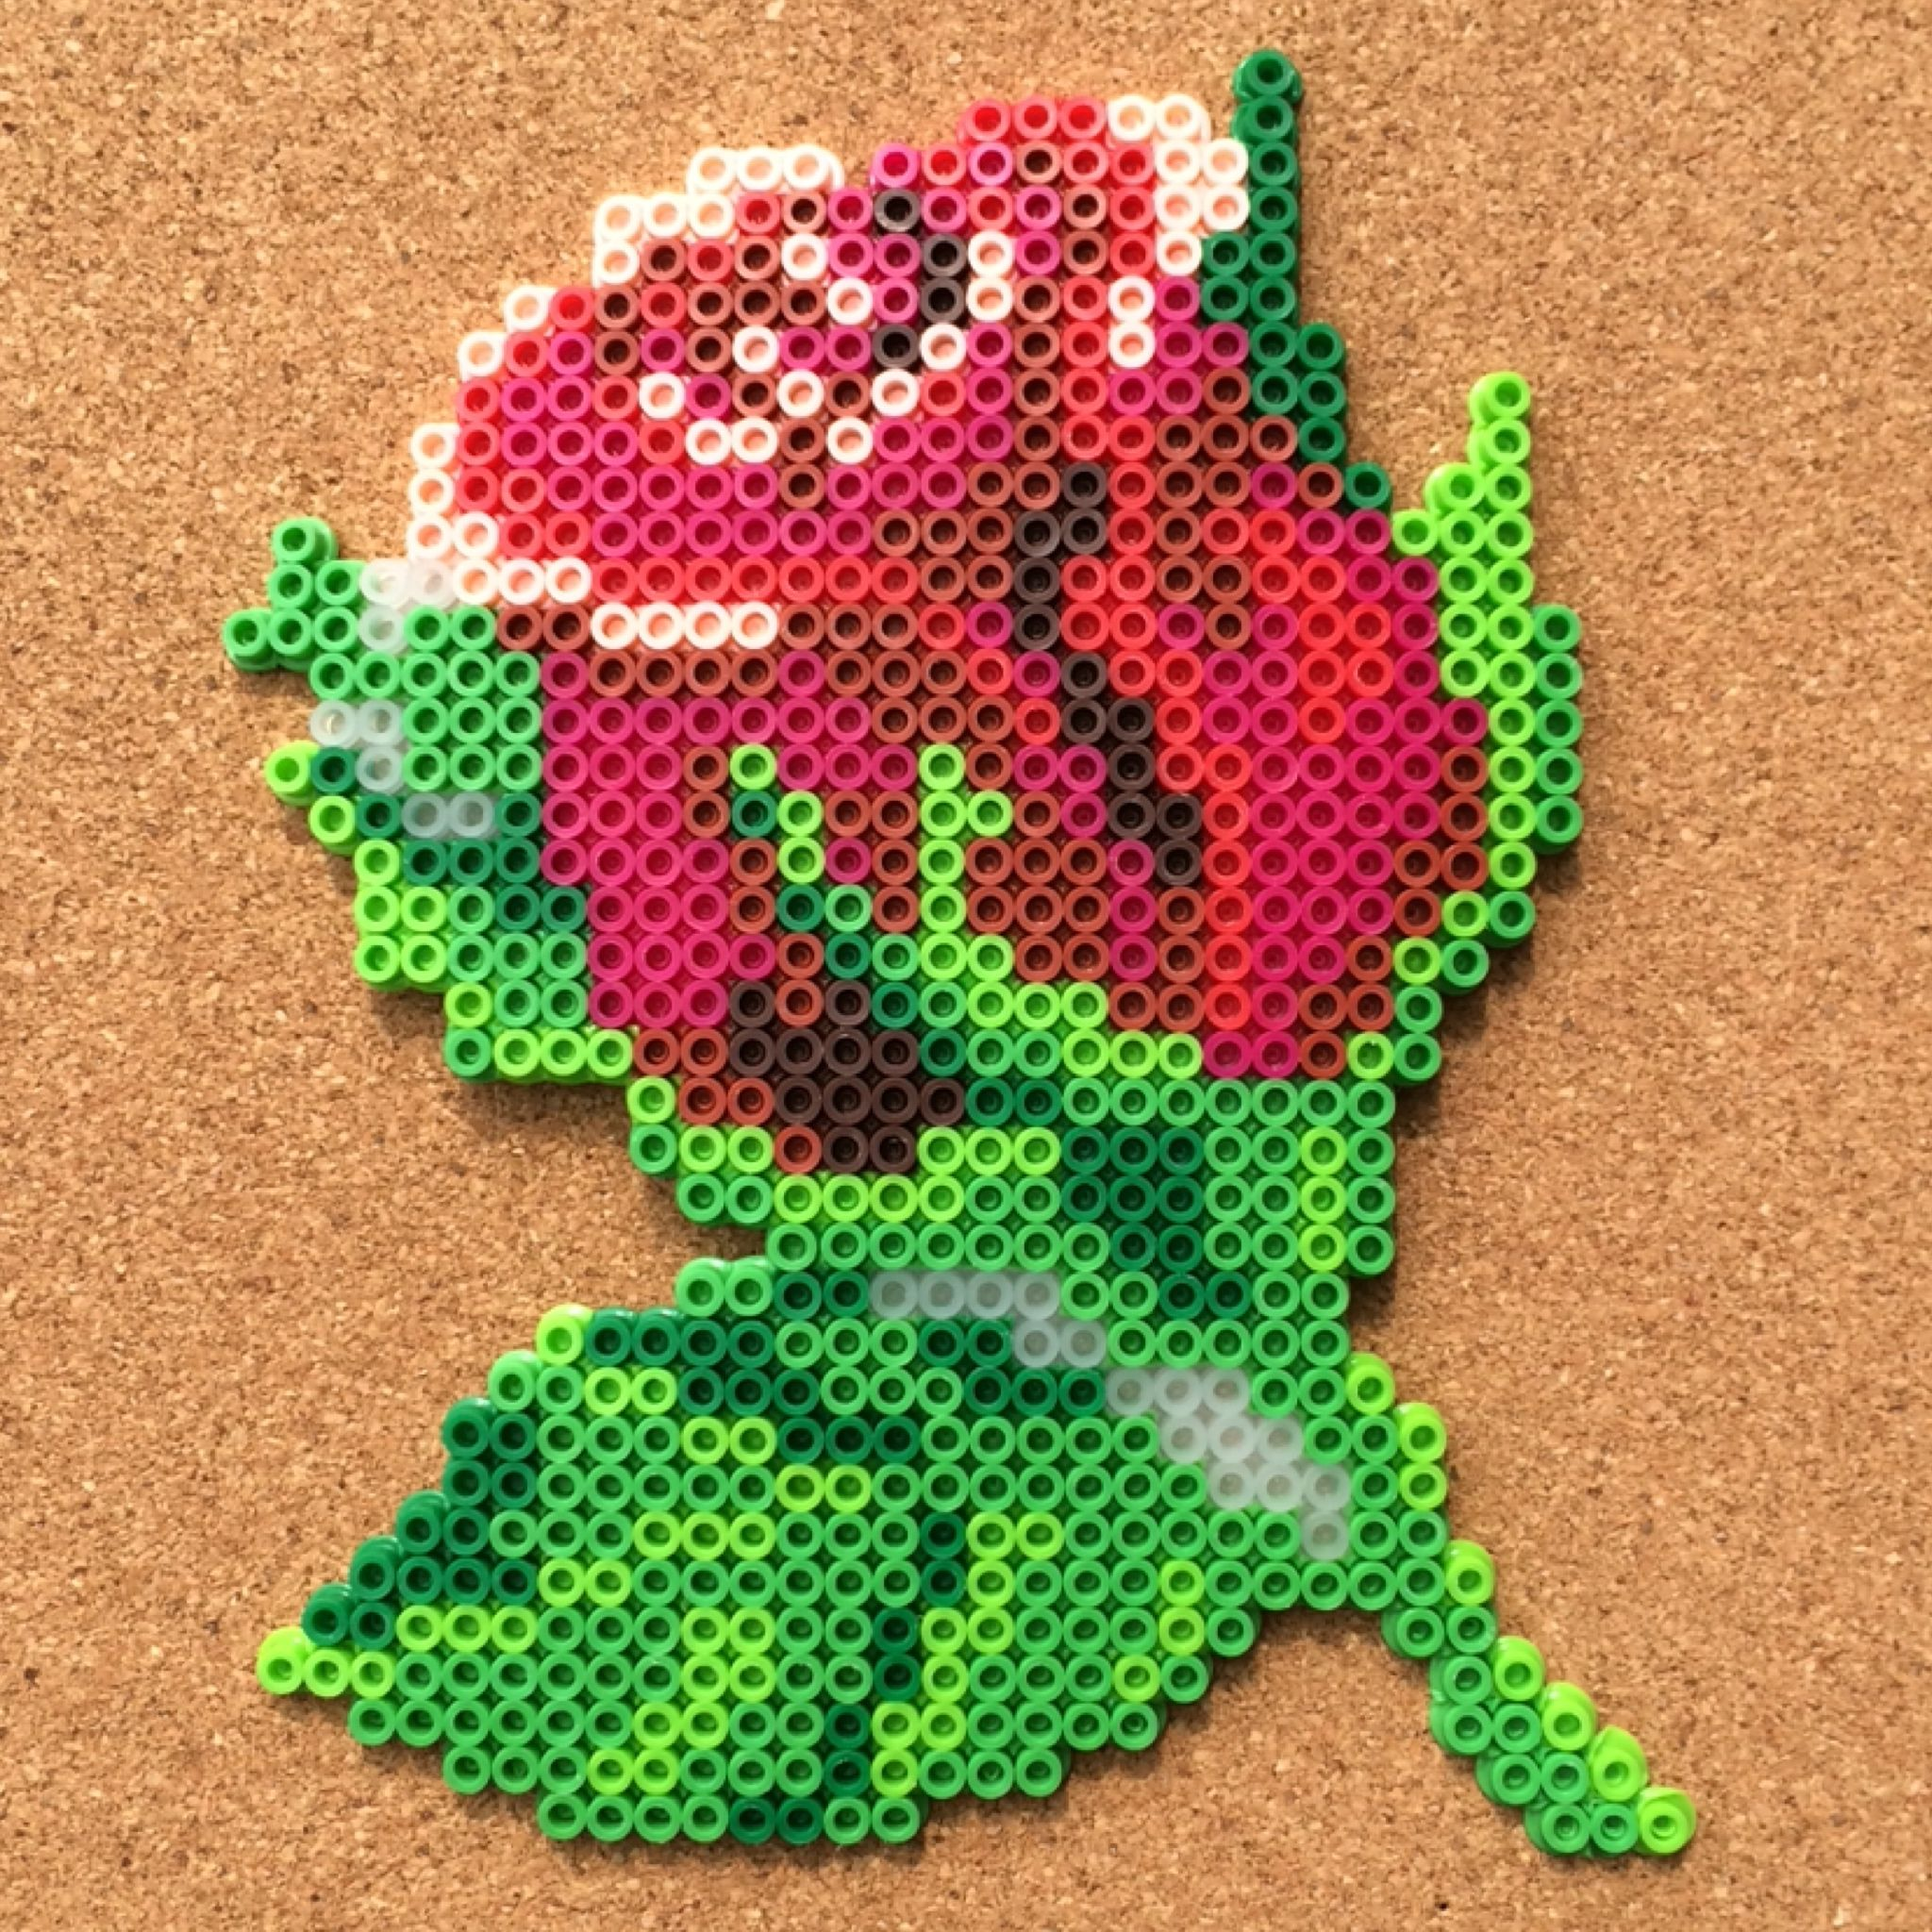 anal beads rose bud